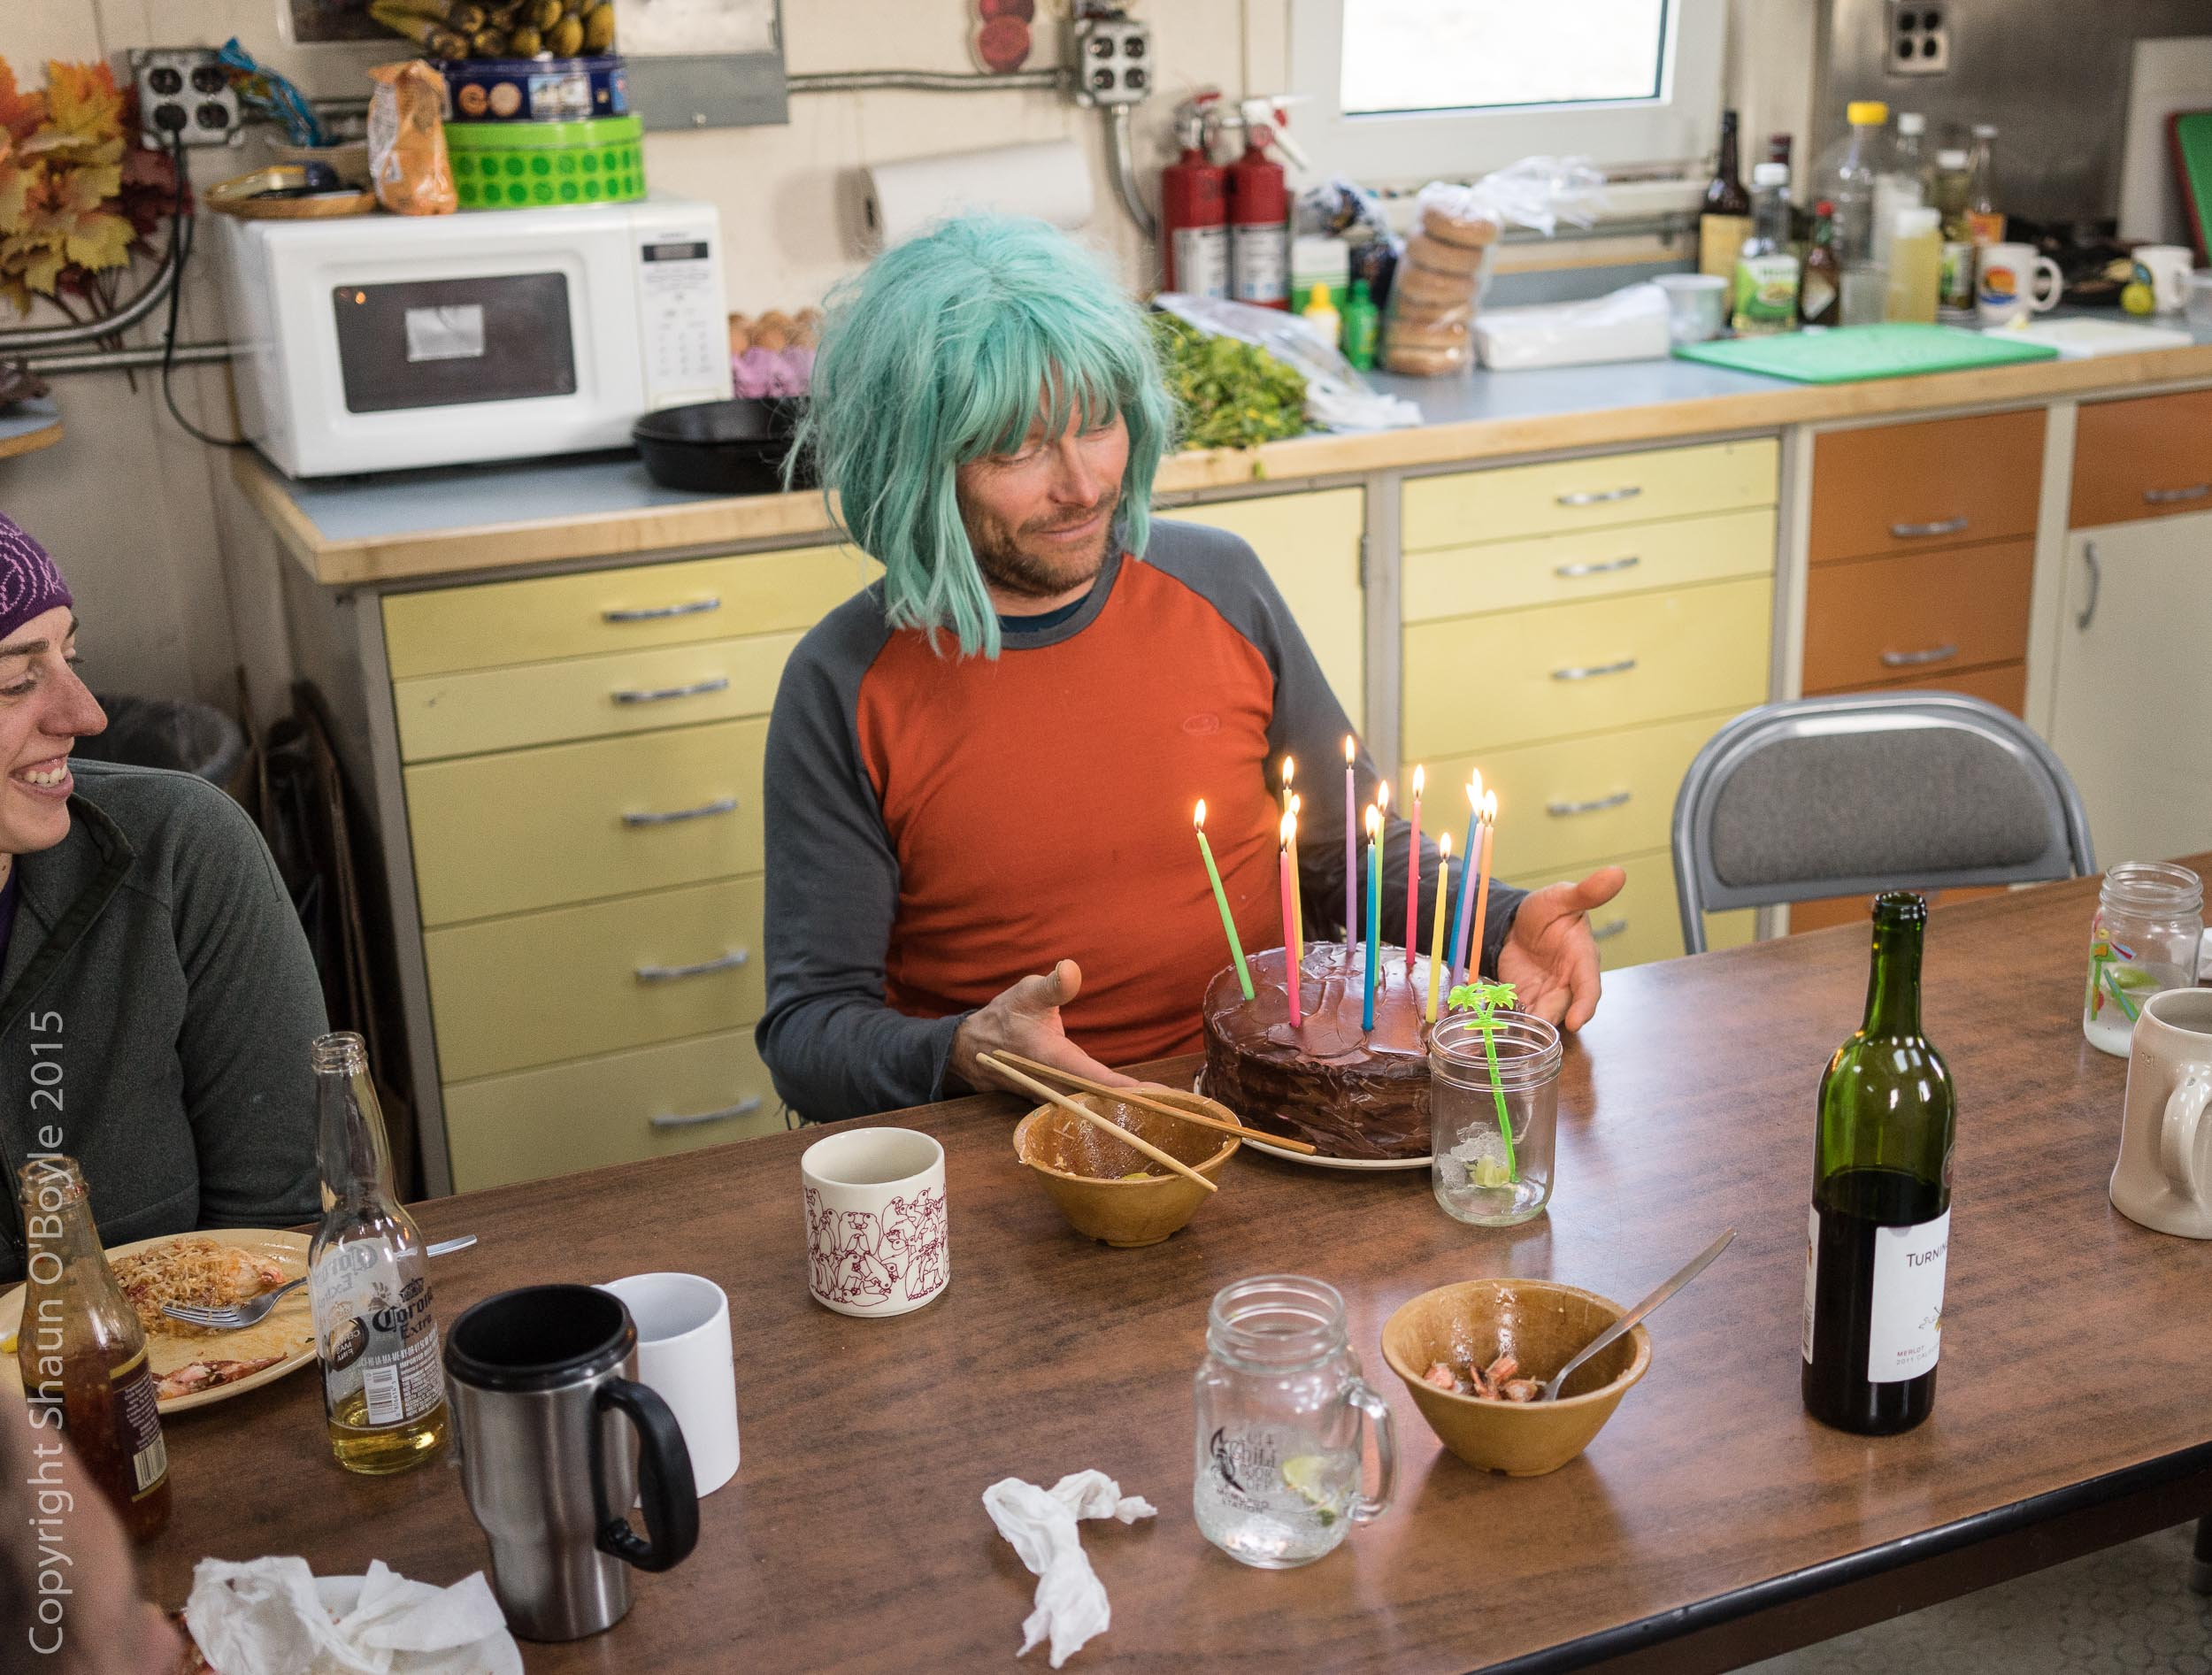 Thomas, wearing the birthday wig, and having a moment with his cake.